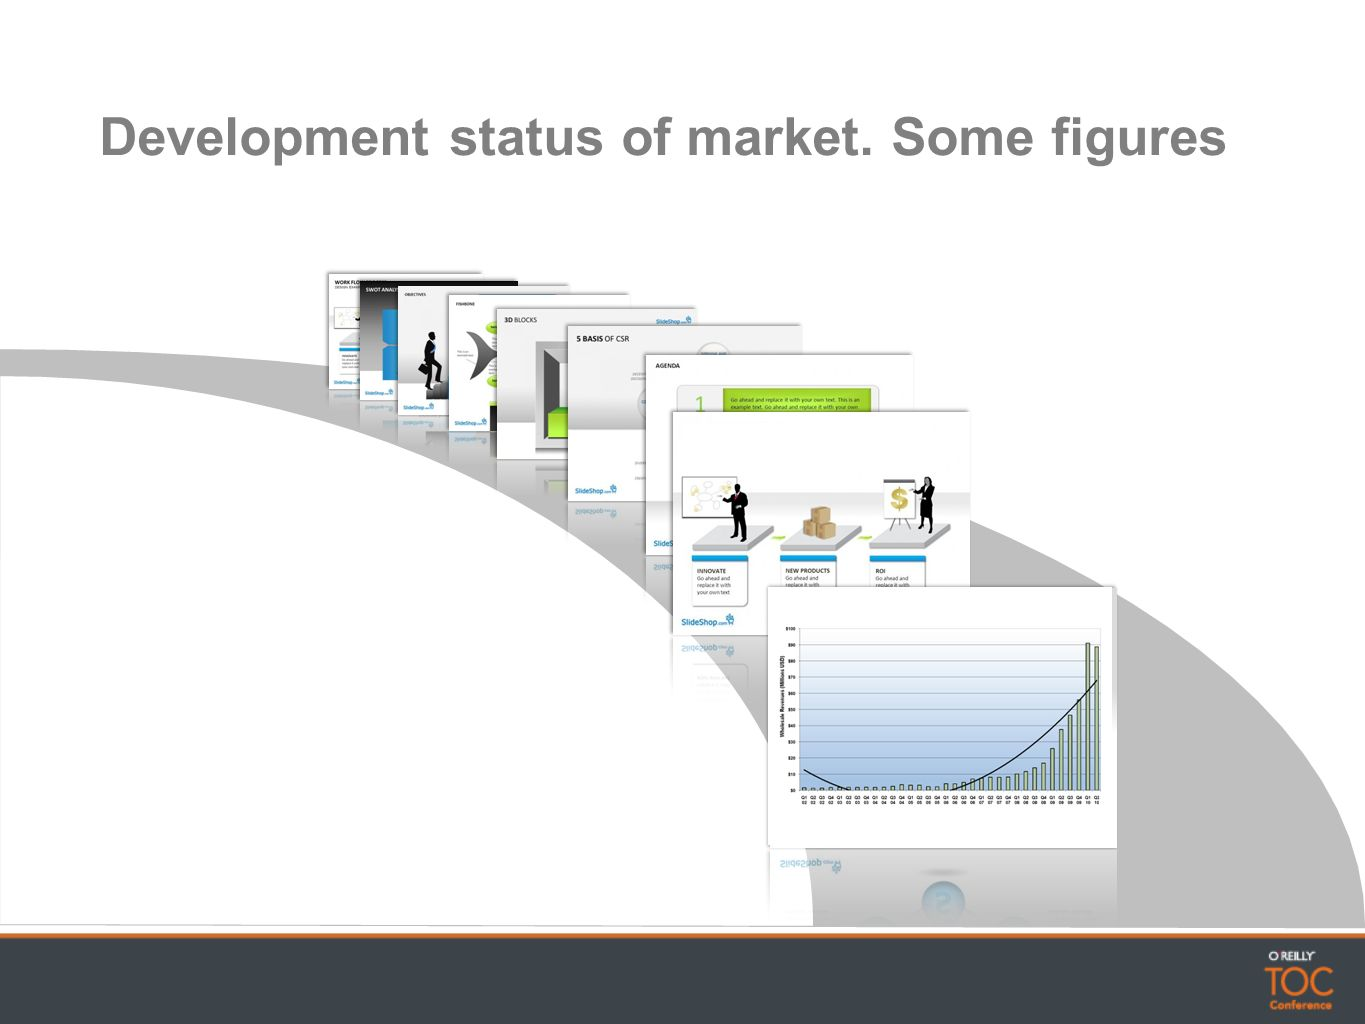 Development status of market. Some figures